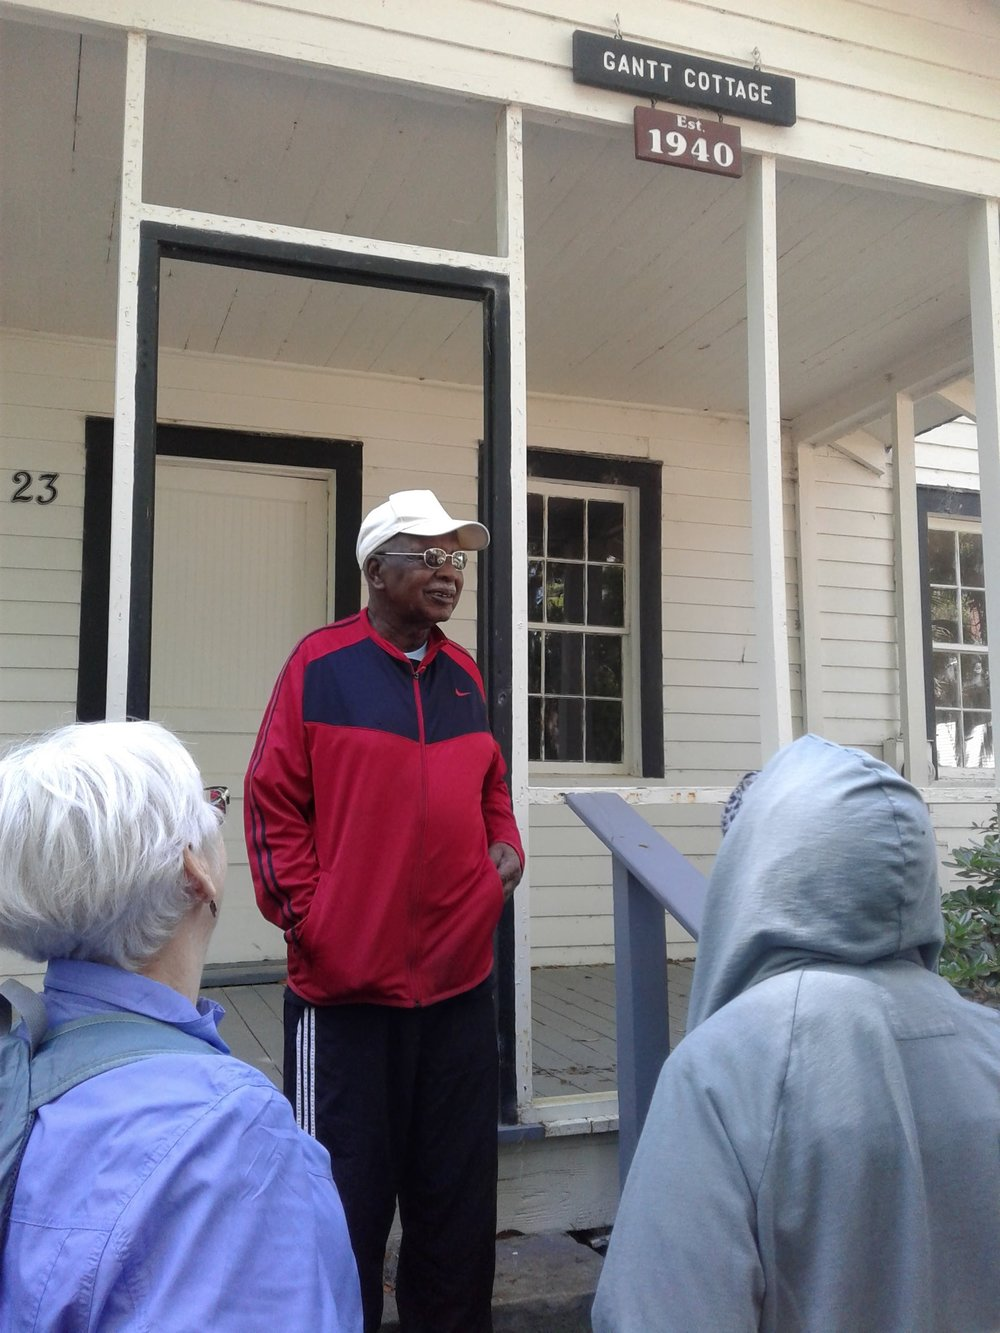 CC Tour of the Penn Center with Robert Middleton. Martin Luther King stayed at Gantt Cottage.